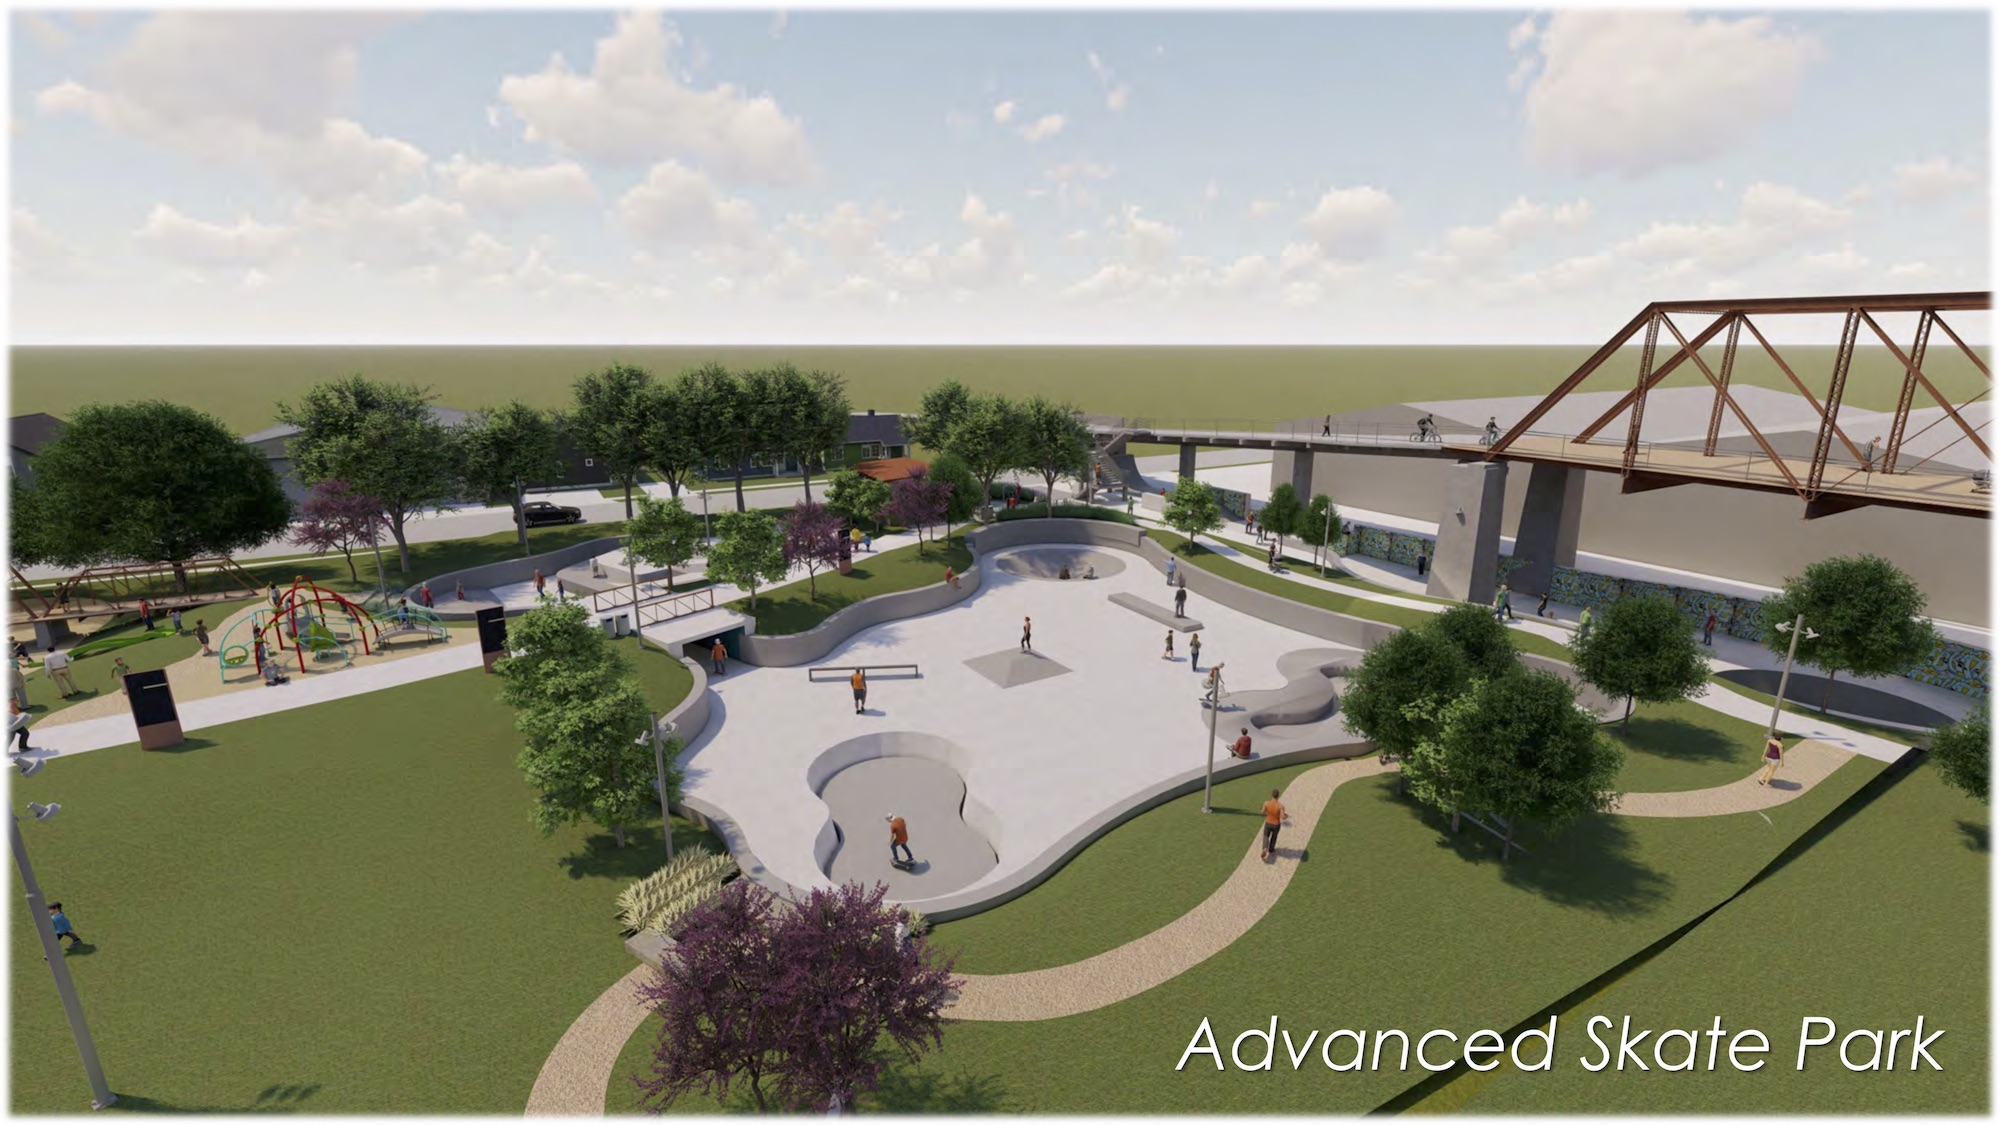 This rendering shows the advanced skate park next to the Hays Street Bridge. The beginners park is further east, connected by a tunnel.